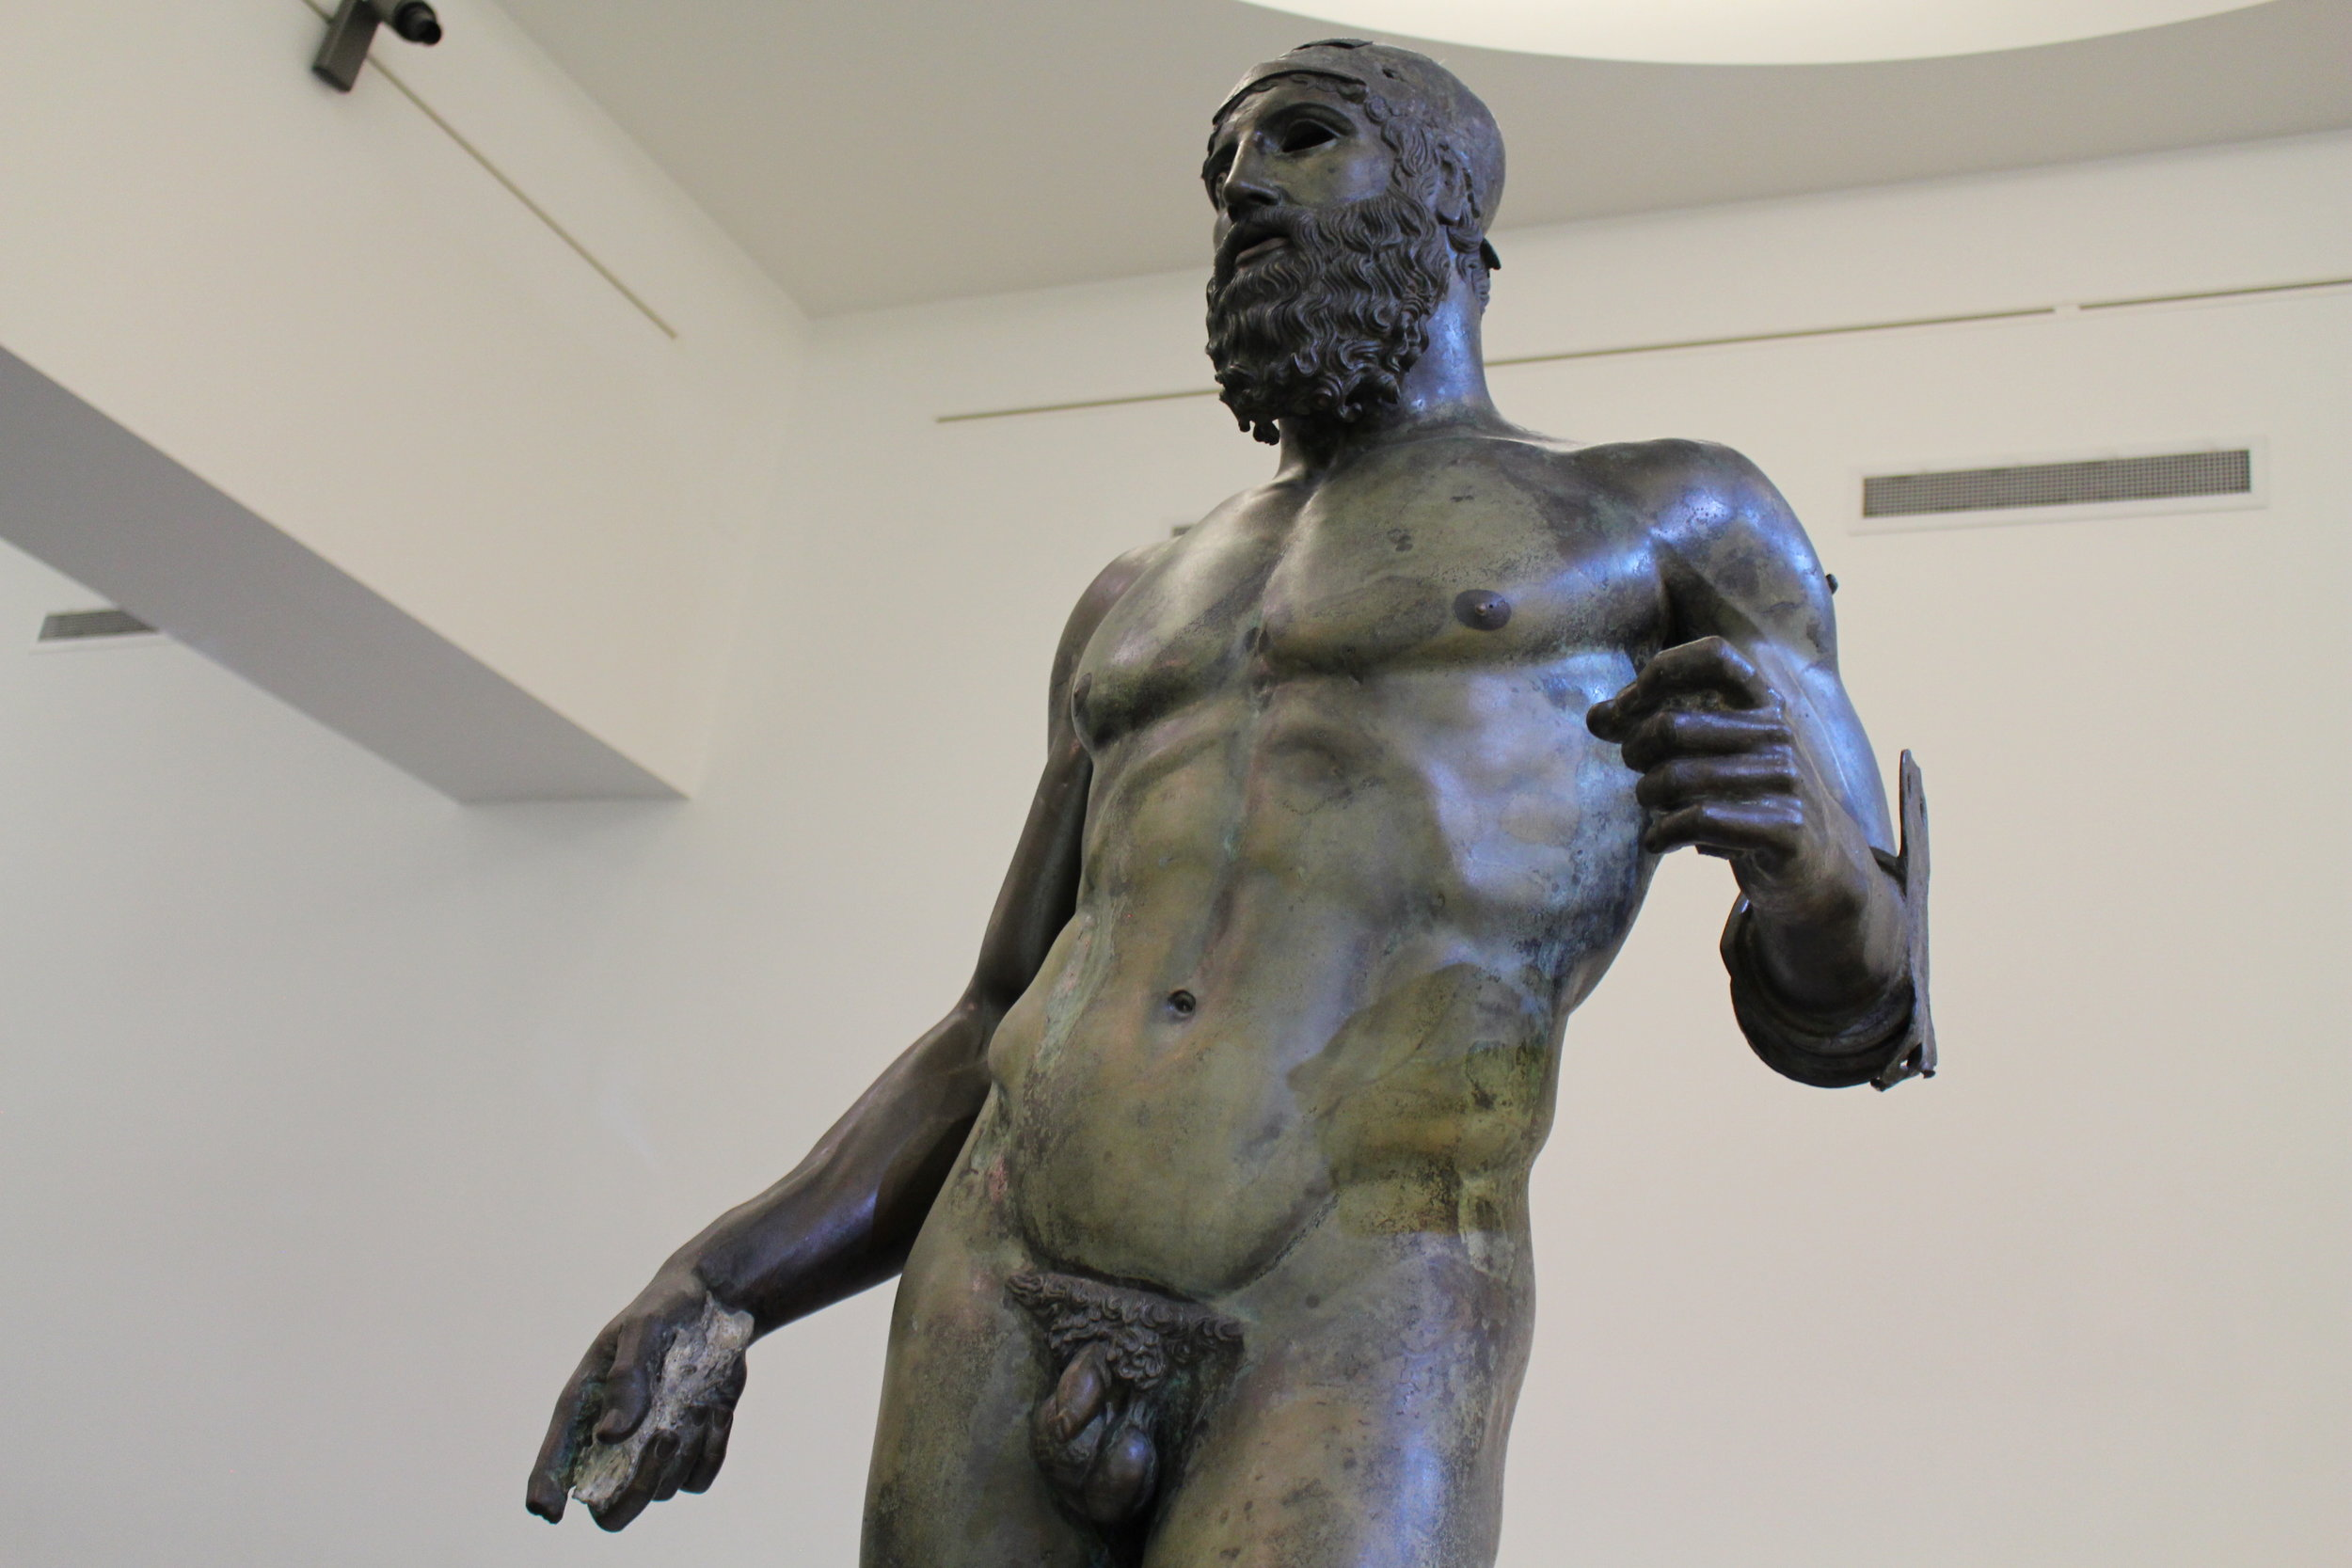 Statue B, which likely had a helmet originally. Isn't it ironic that such distinguished pieces don't have better names?